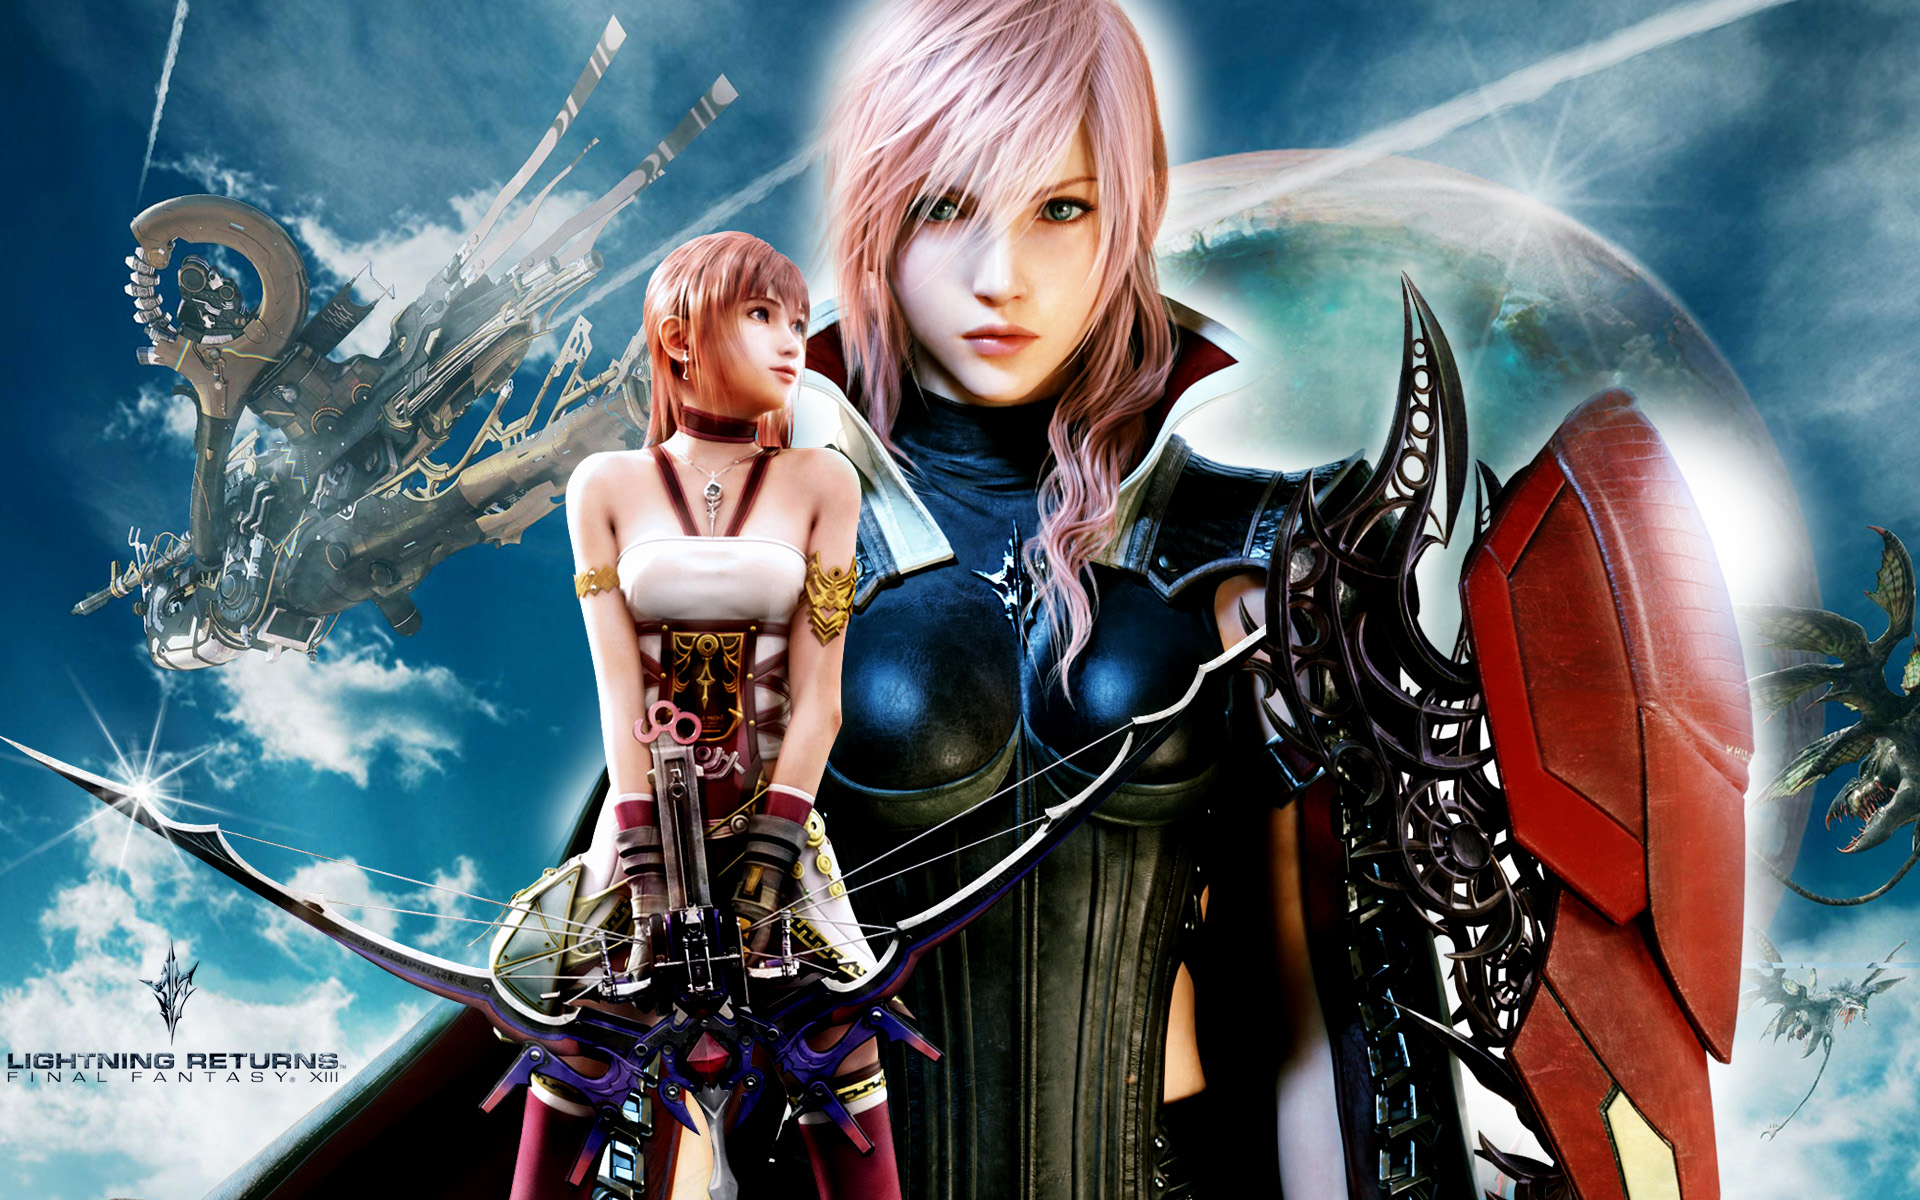 Lightning Returns Final Fantasy XIII Wallpapers HD Wallpapers 1920x1200